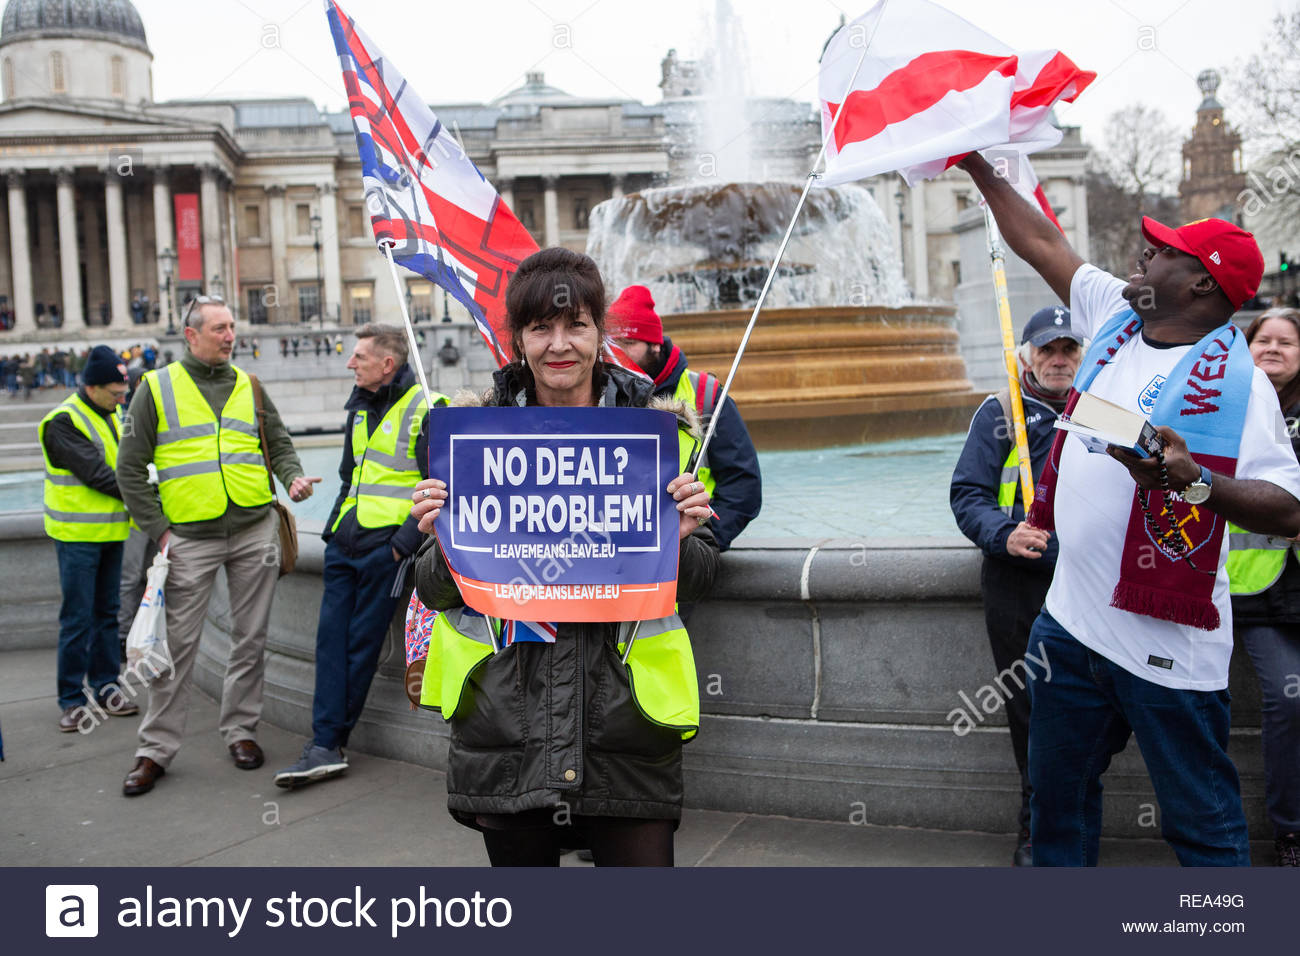 London, UK. 19 January 2019. Woman Yellow Vest protestor holds placard prior to start of march while bystander tries to catch flag. Graeme Barbour/Ala - Stock Image